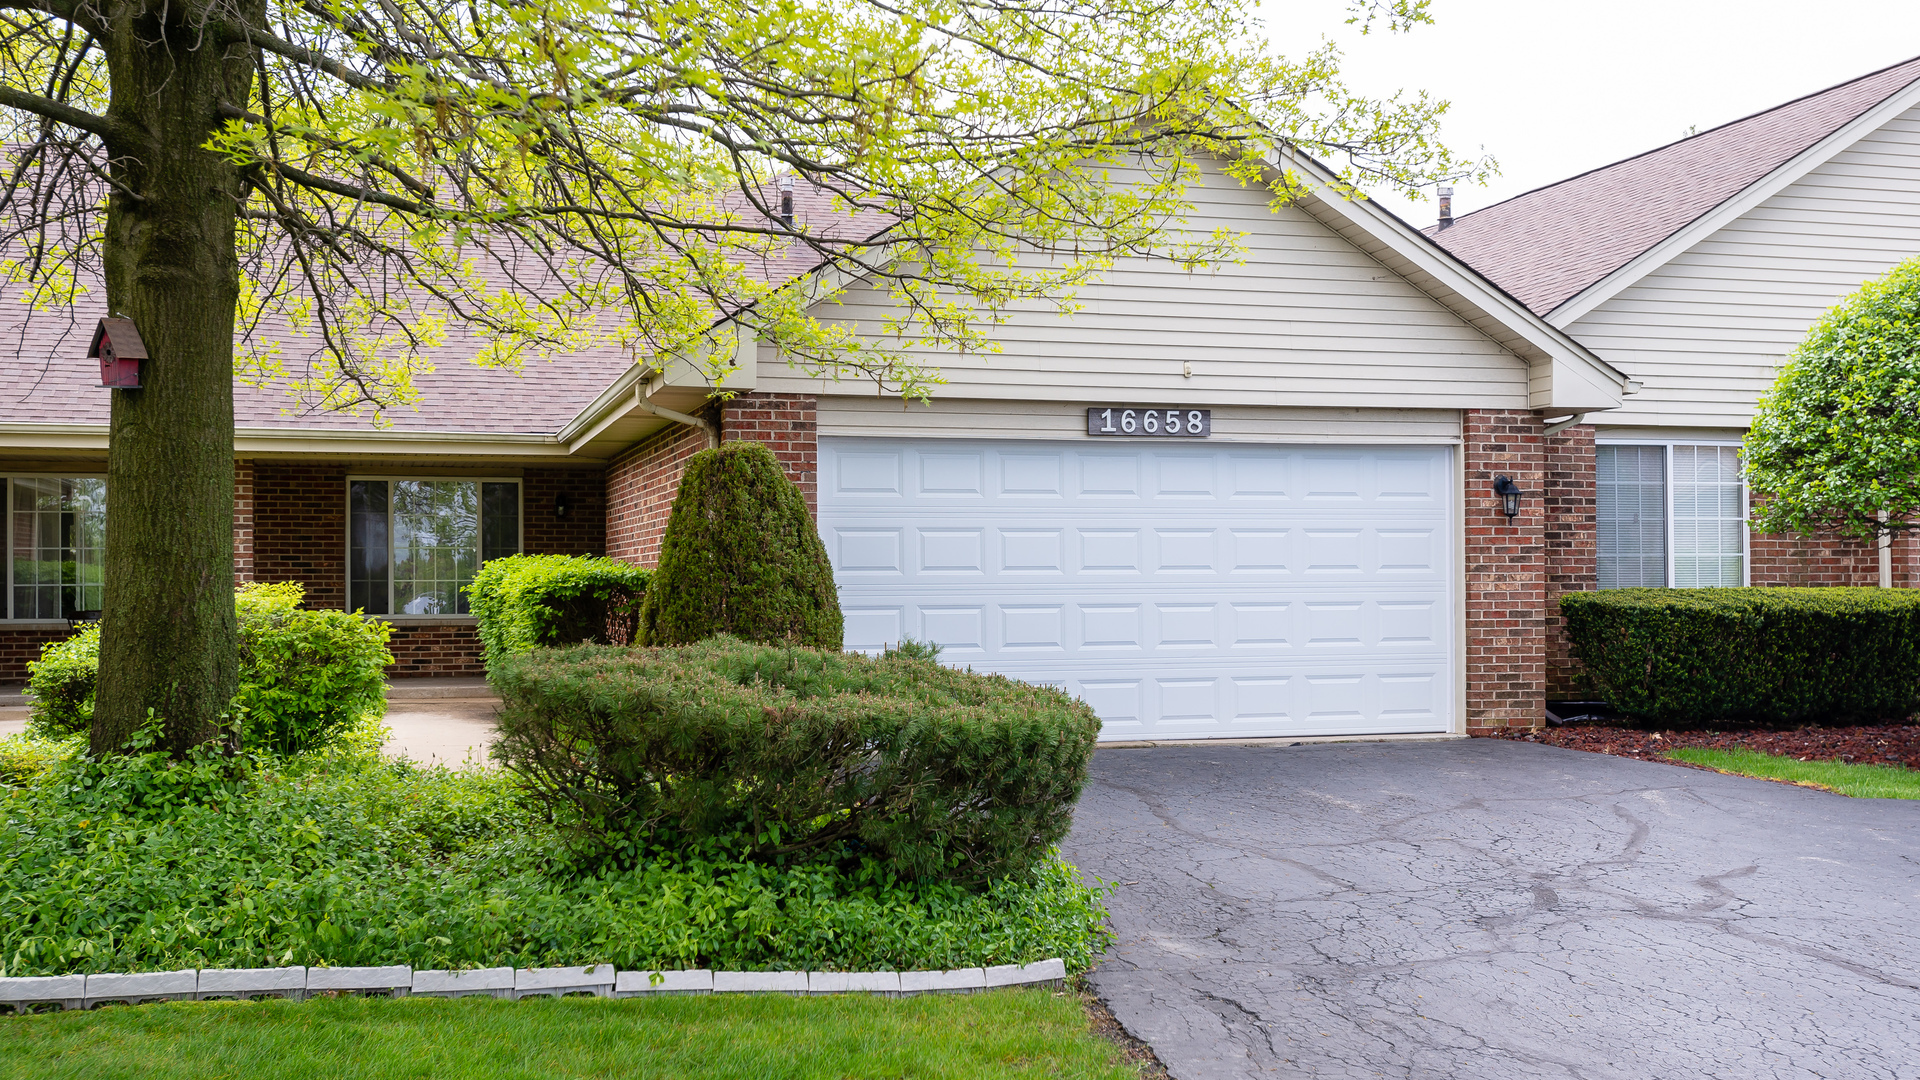 16658 SETON Place, Orland Park in Cook County, IL 60467 Home for Sale